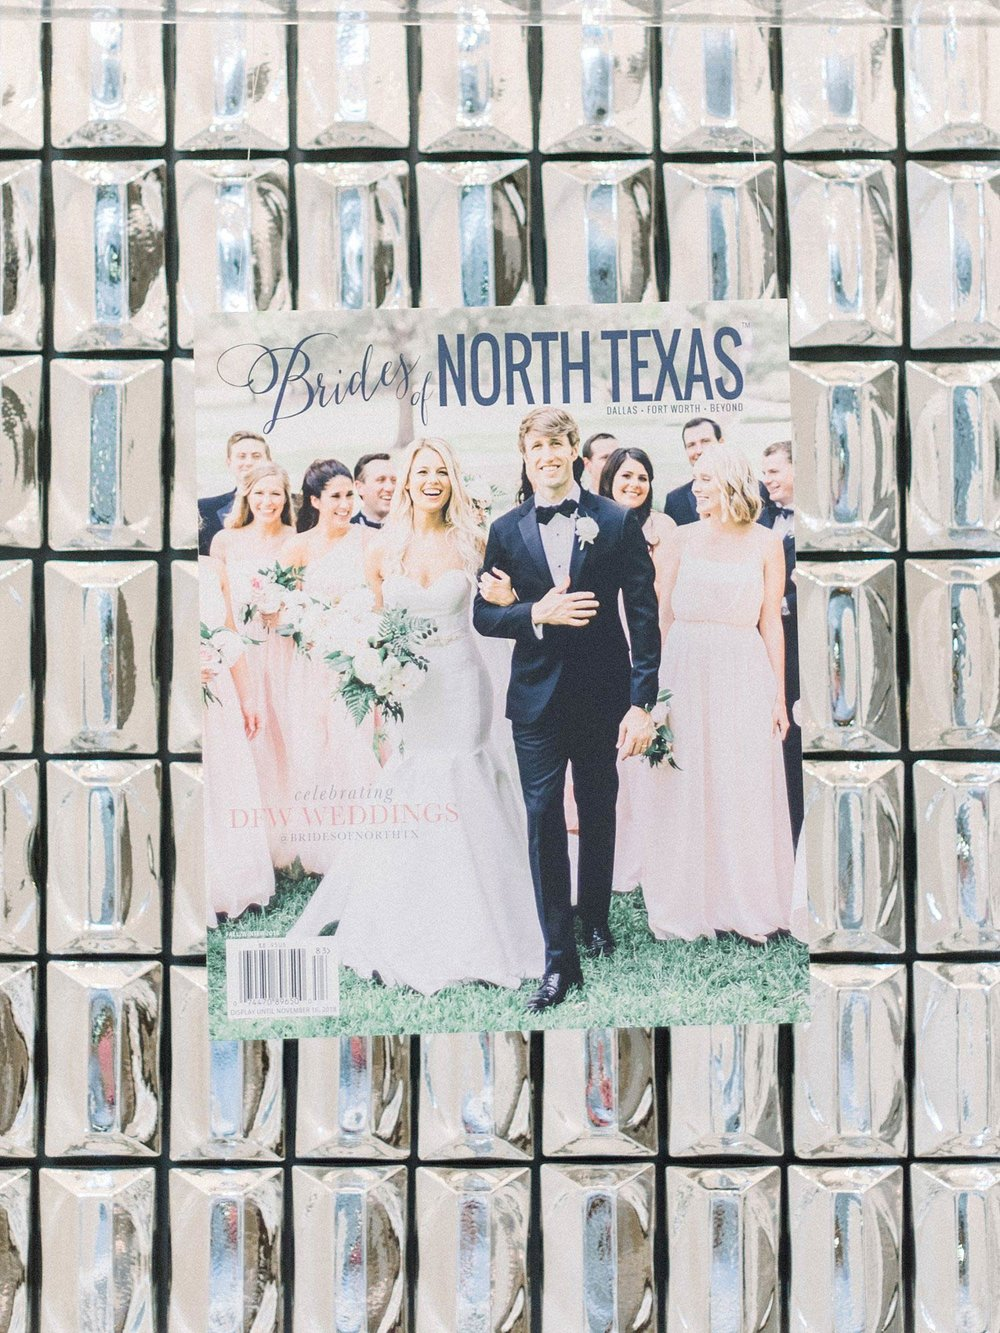 Brides of North Texas Spring 2018 issue